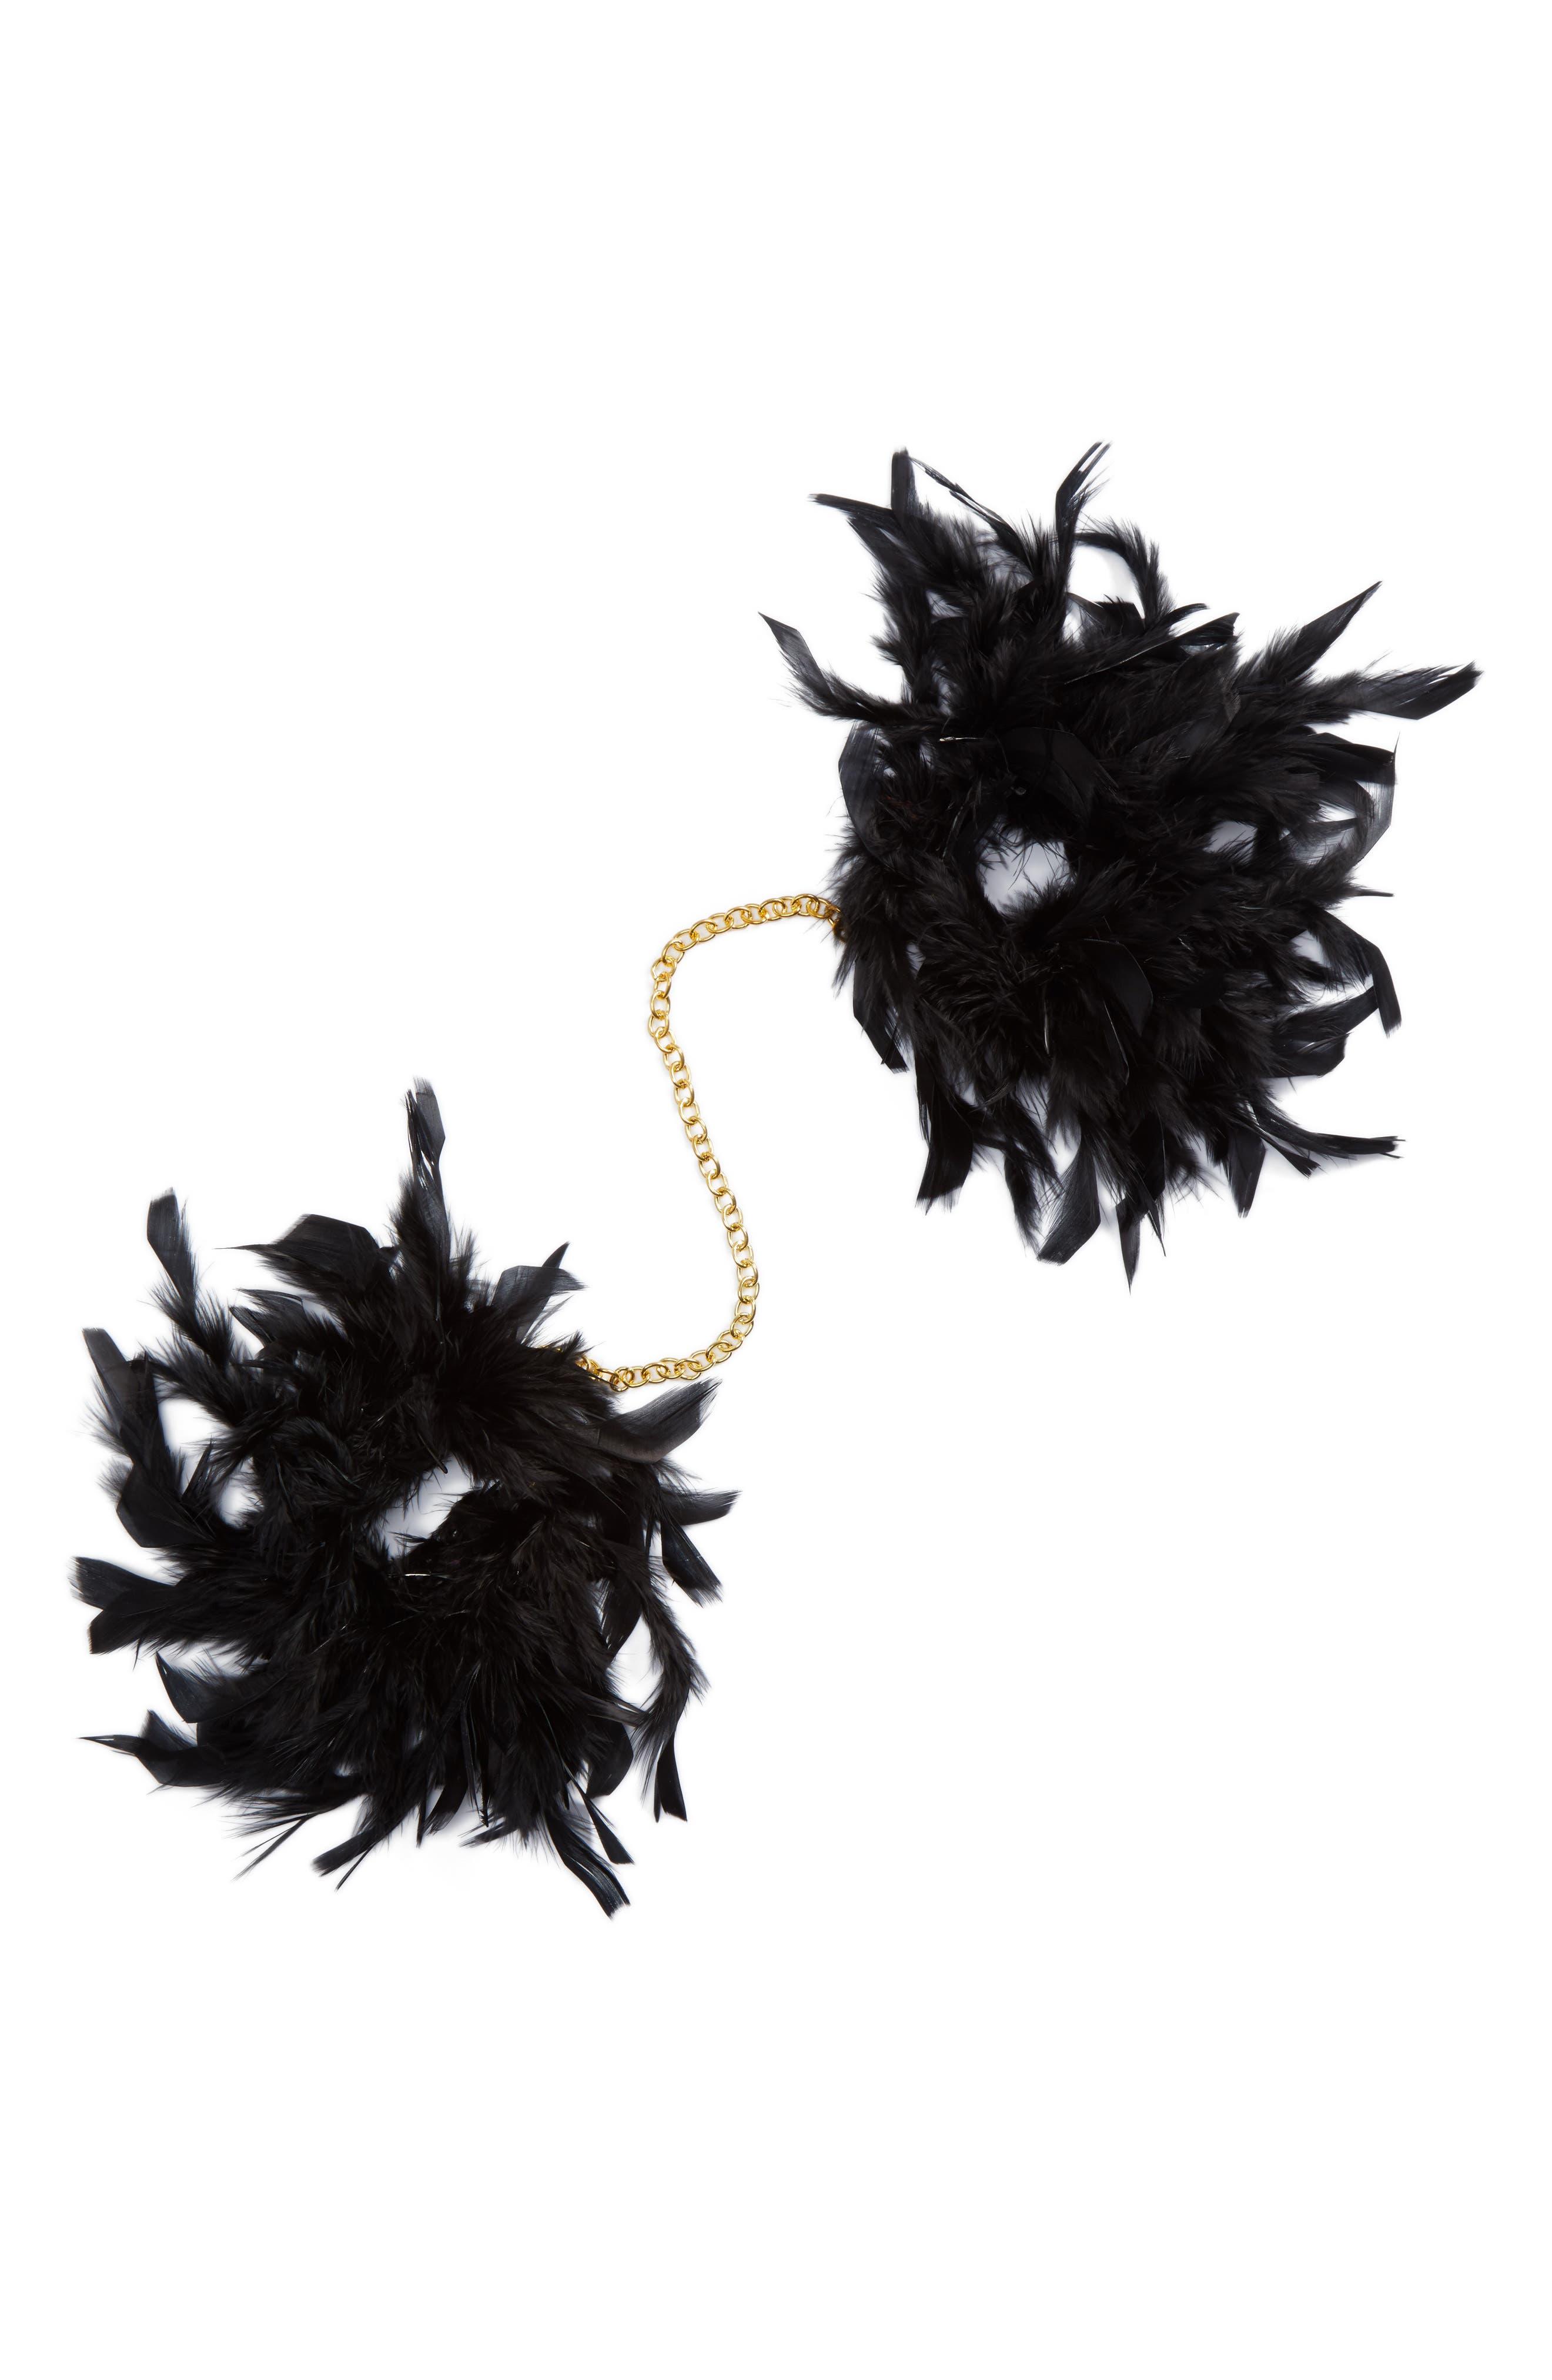 Feather Faux Handcuffs,                             Main thumbnail 1, color,                             Black